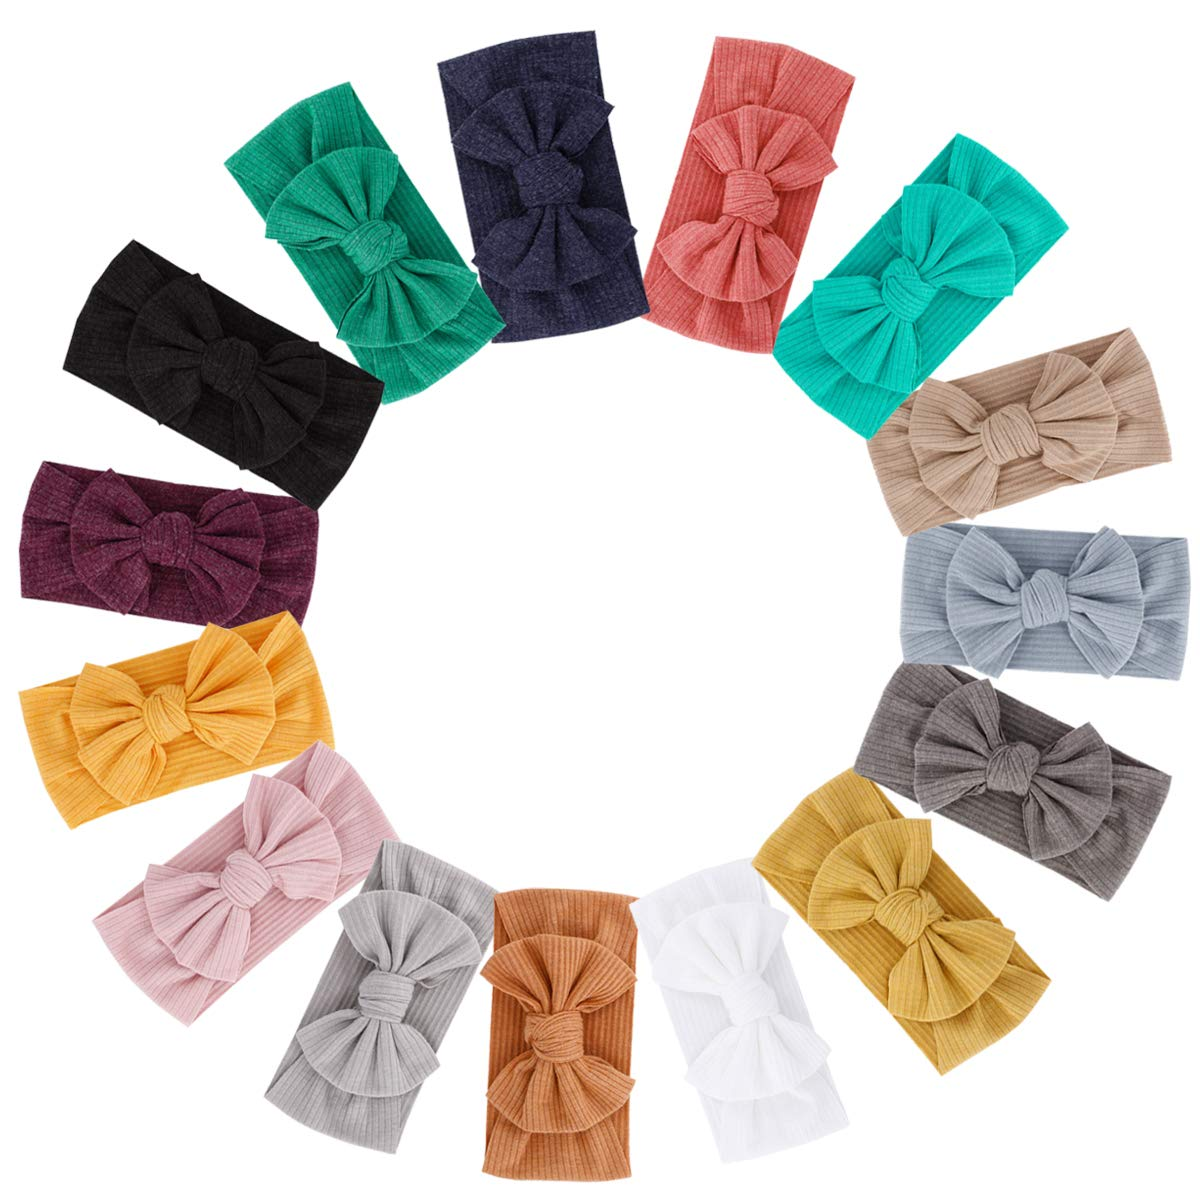 15pcs Baby Super Stretchy Nylon Knotted Headbands Baby Headwraps Baby Headbands Bows (MQ139)